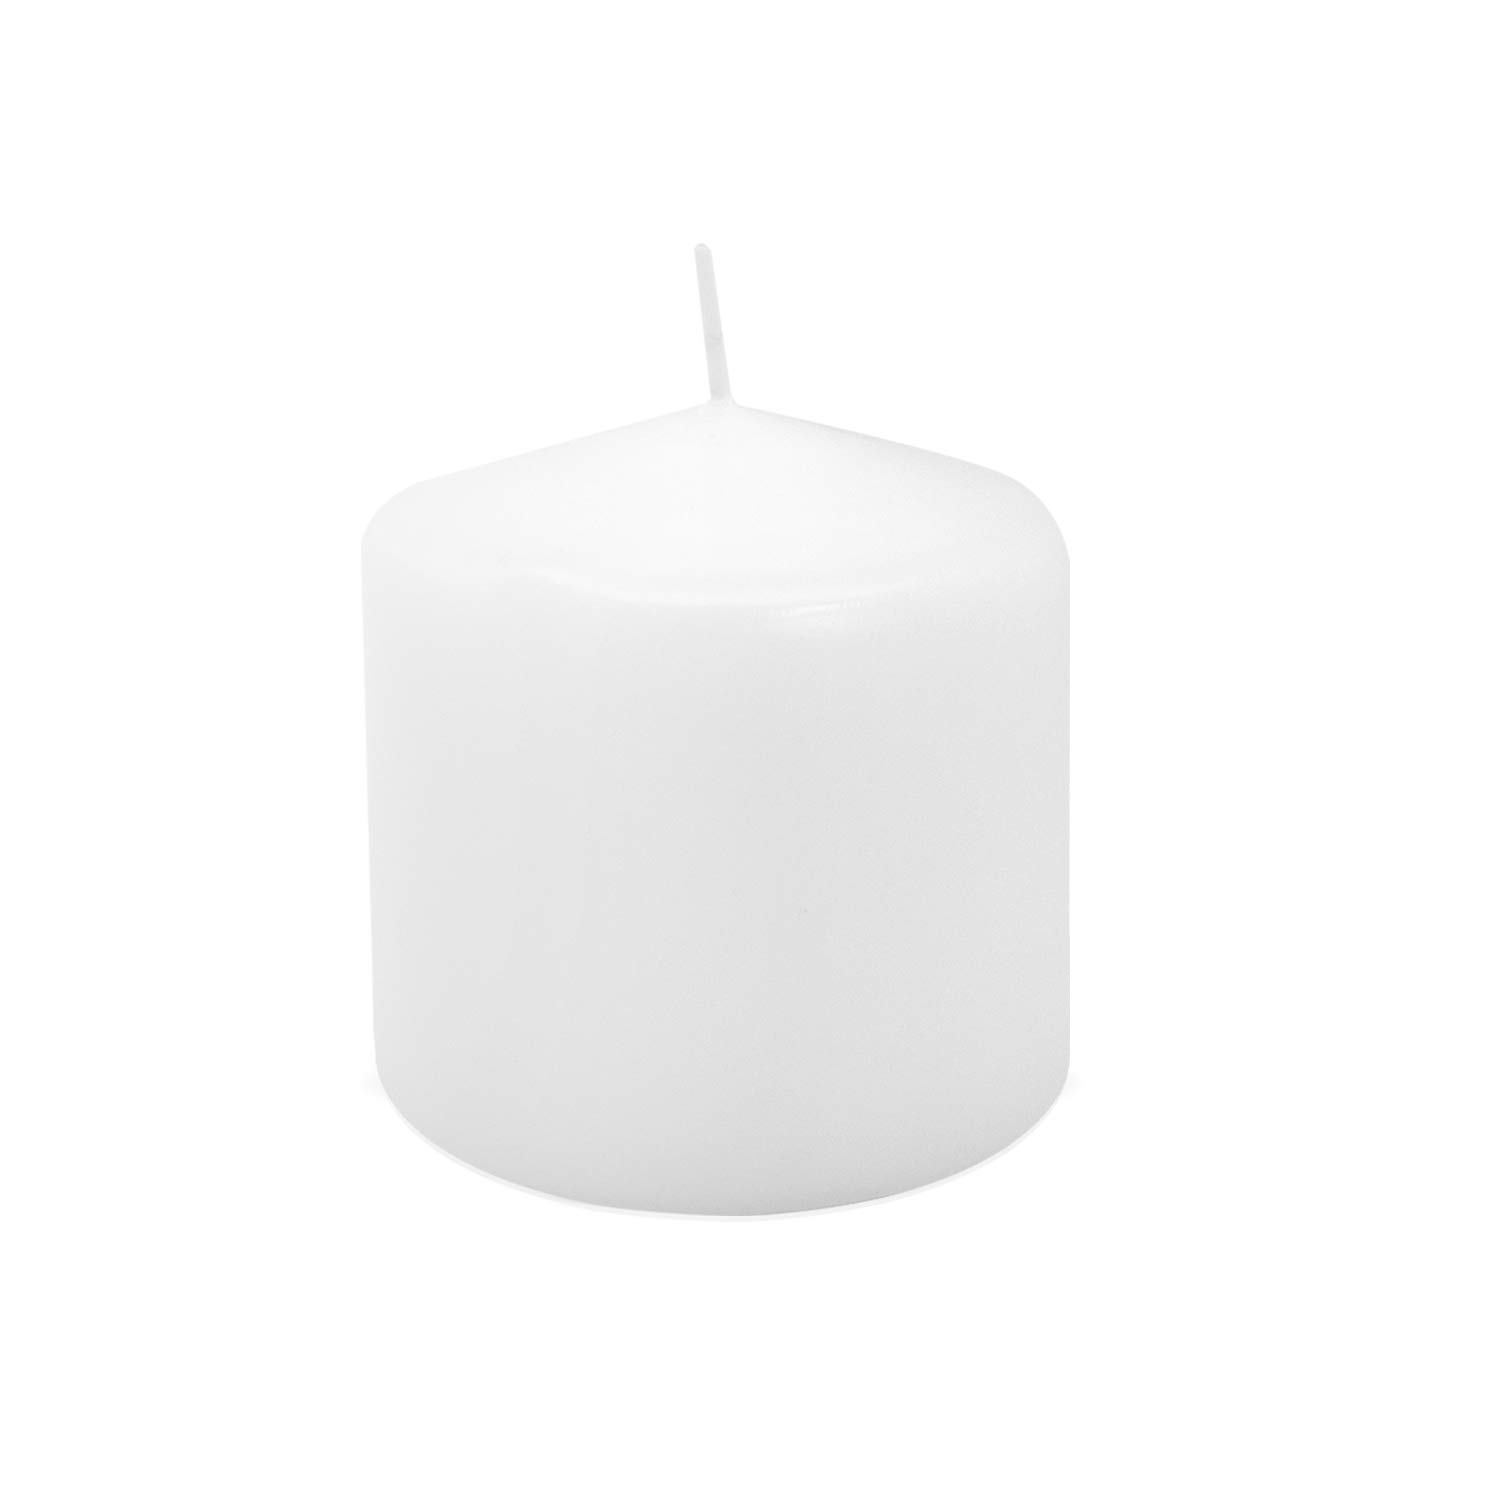 Royal Imports Pillar Candle for Wedding, Birthday, Holiday & Home Decoration, 3x3, White Wax, Set of 12